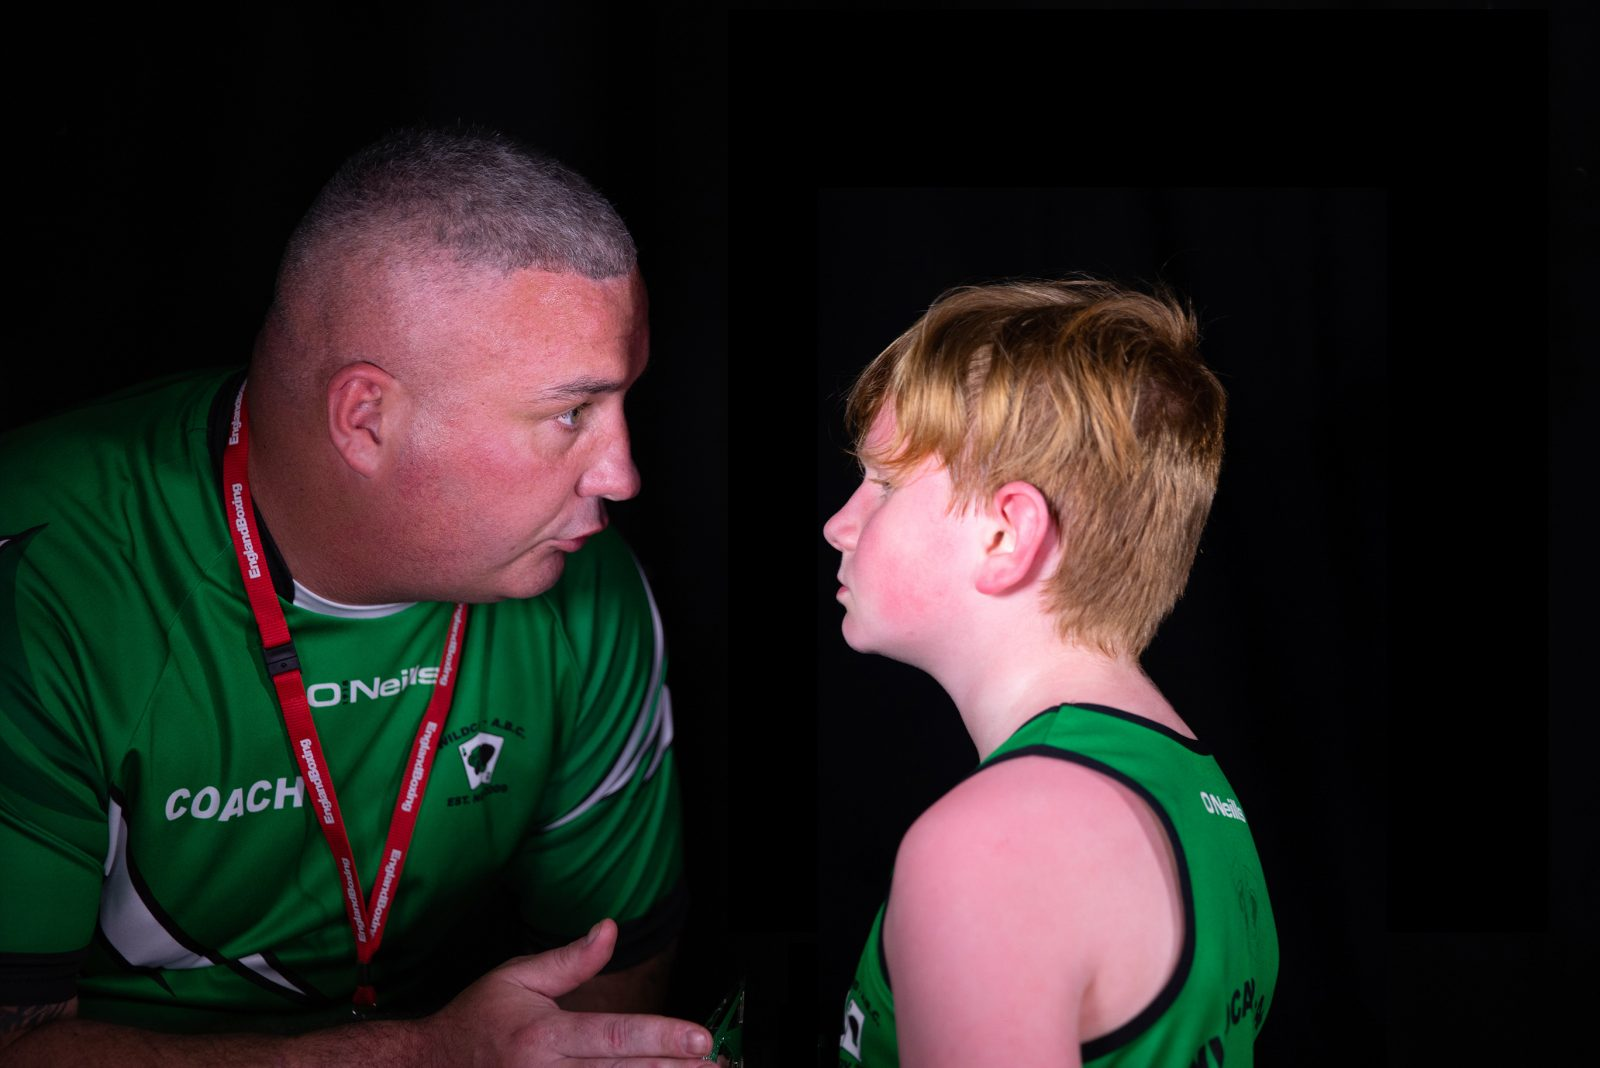 A man wearing a green sports top and a red lanyard is talking to a young person in a green sports vest. The man is gesturing with their hand. The young person is red faced,